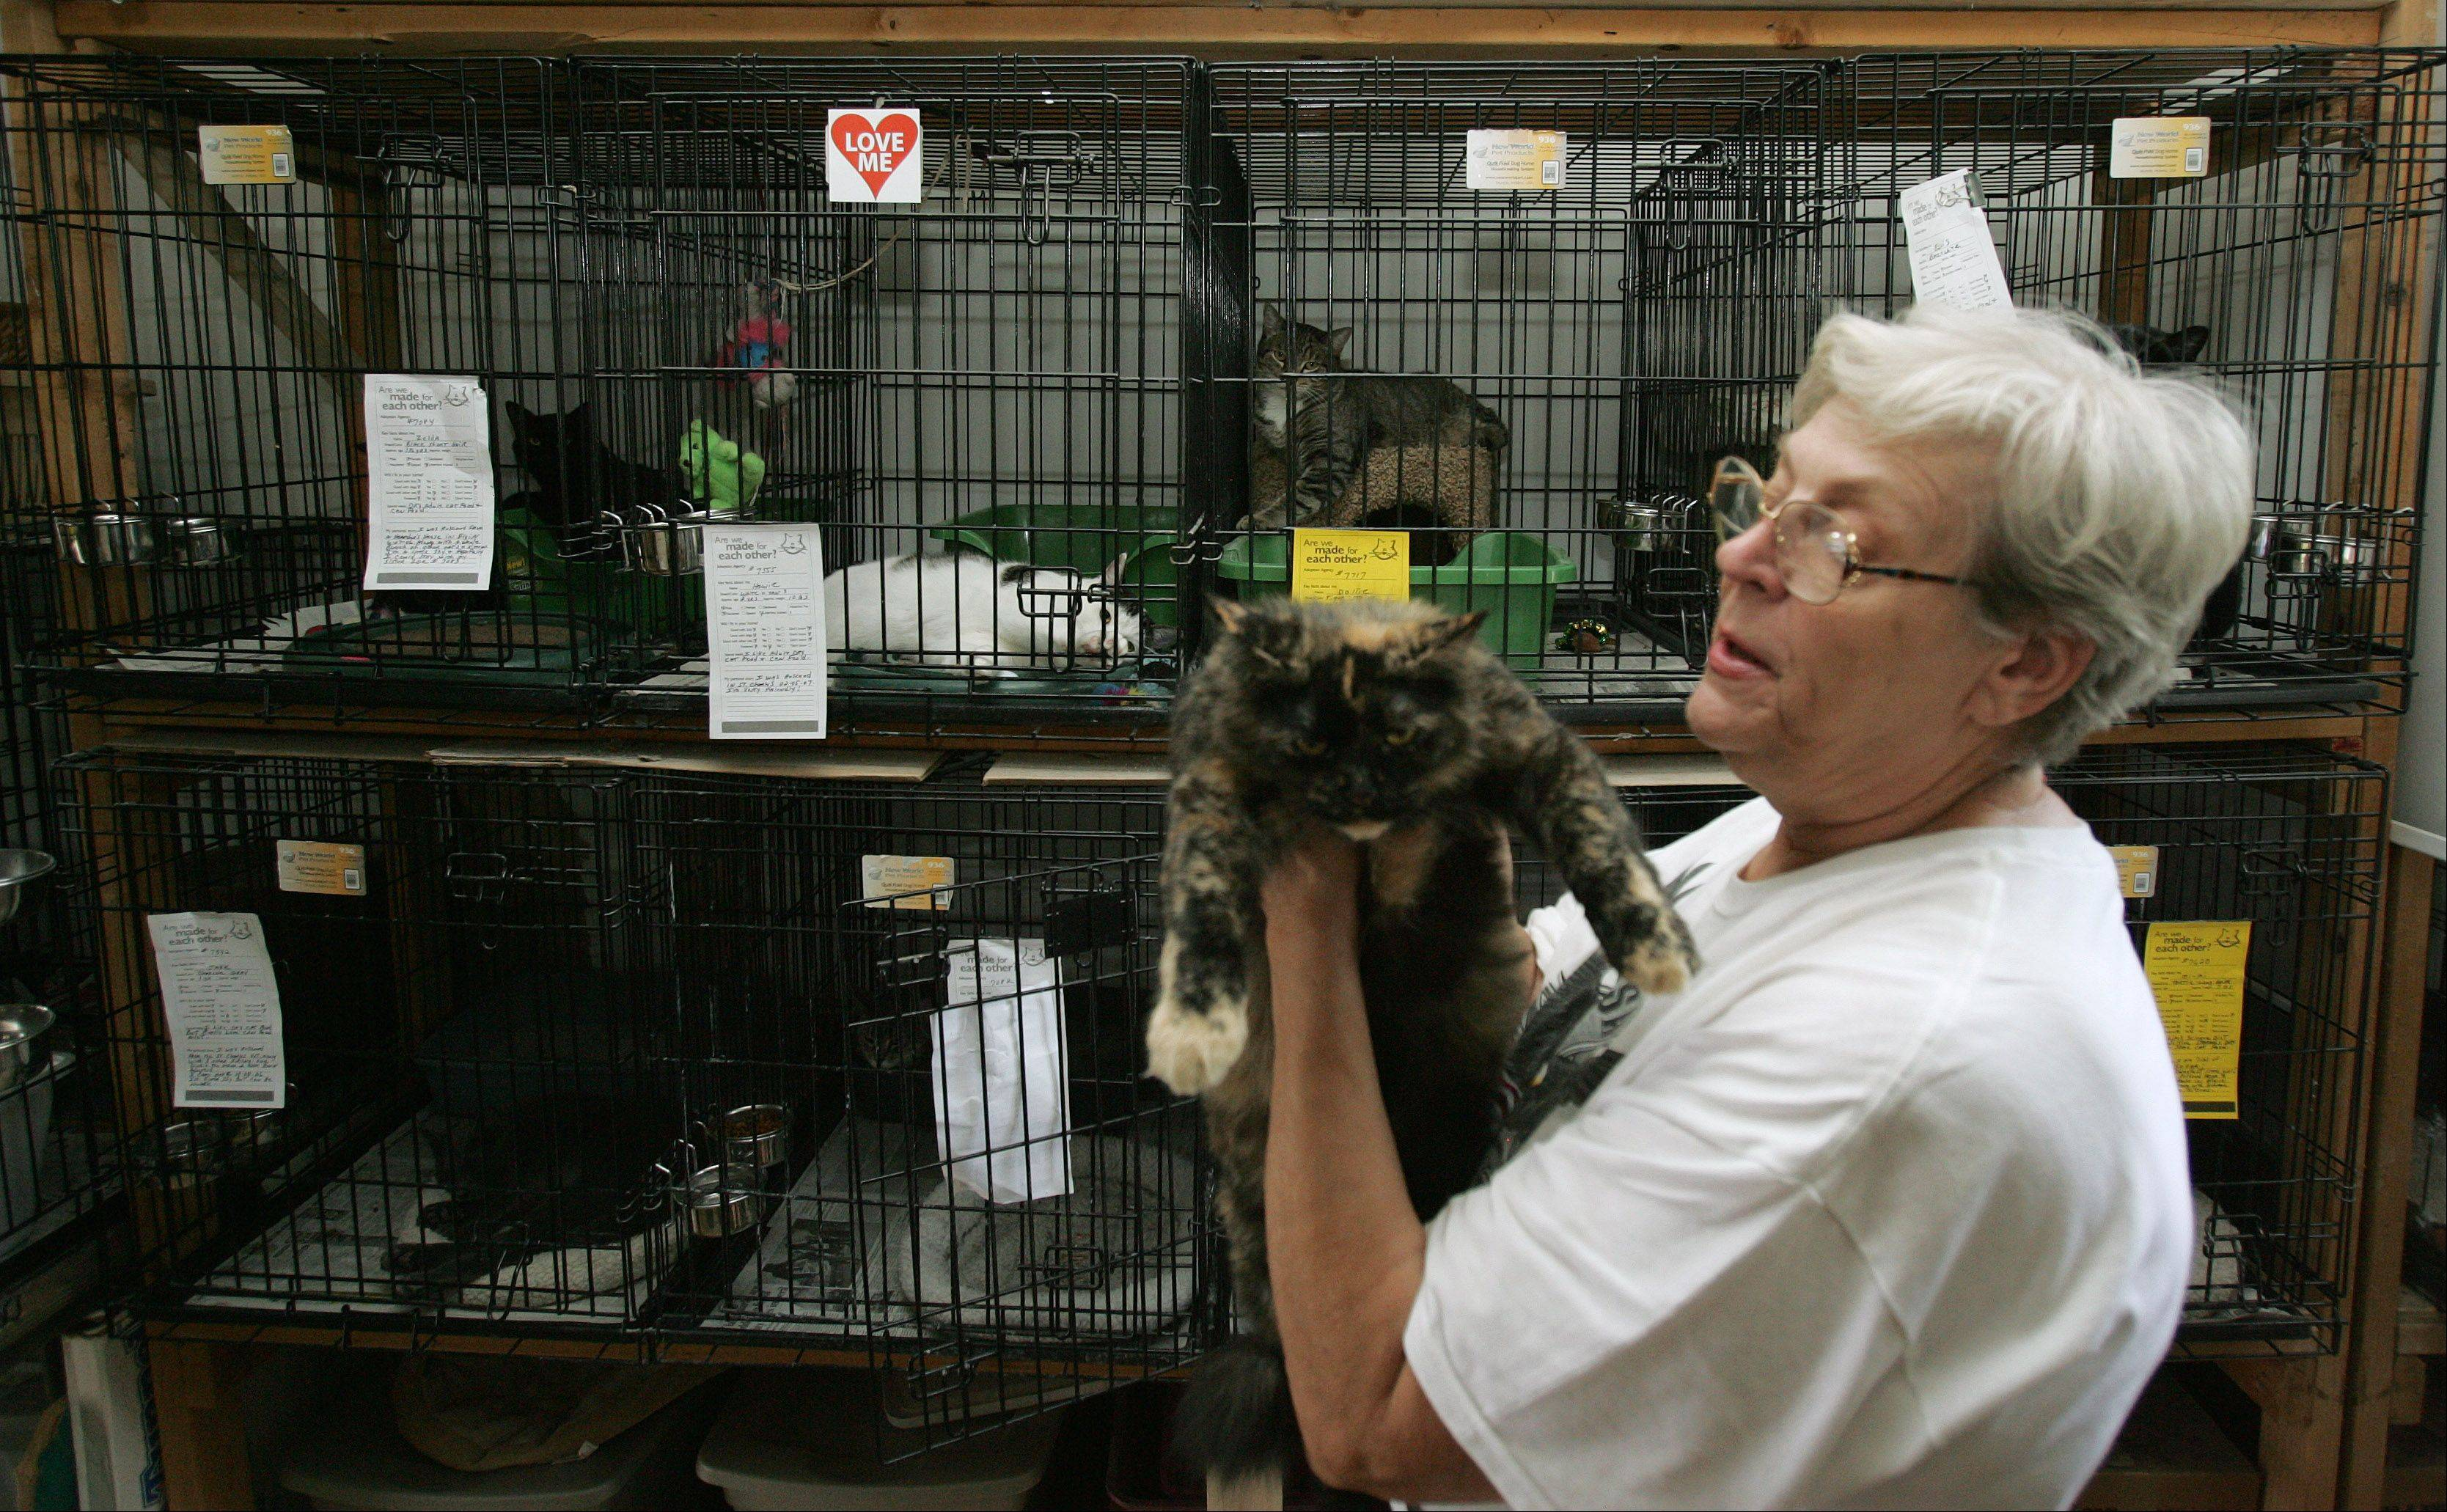 Carol Schultz of South Elgin has been rescuing abandoned cats for 30 years in South Elgin and keeping them in her converted garage. Last year the village's code enforcement officers told her she had to comply with the ordinance banning animal shelters from residential areas. She is due in South Elgin court next month.